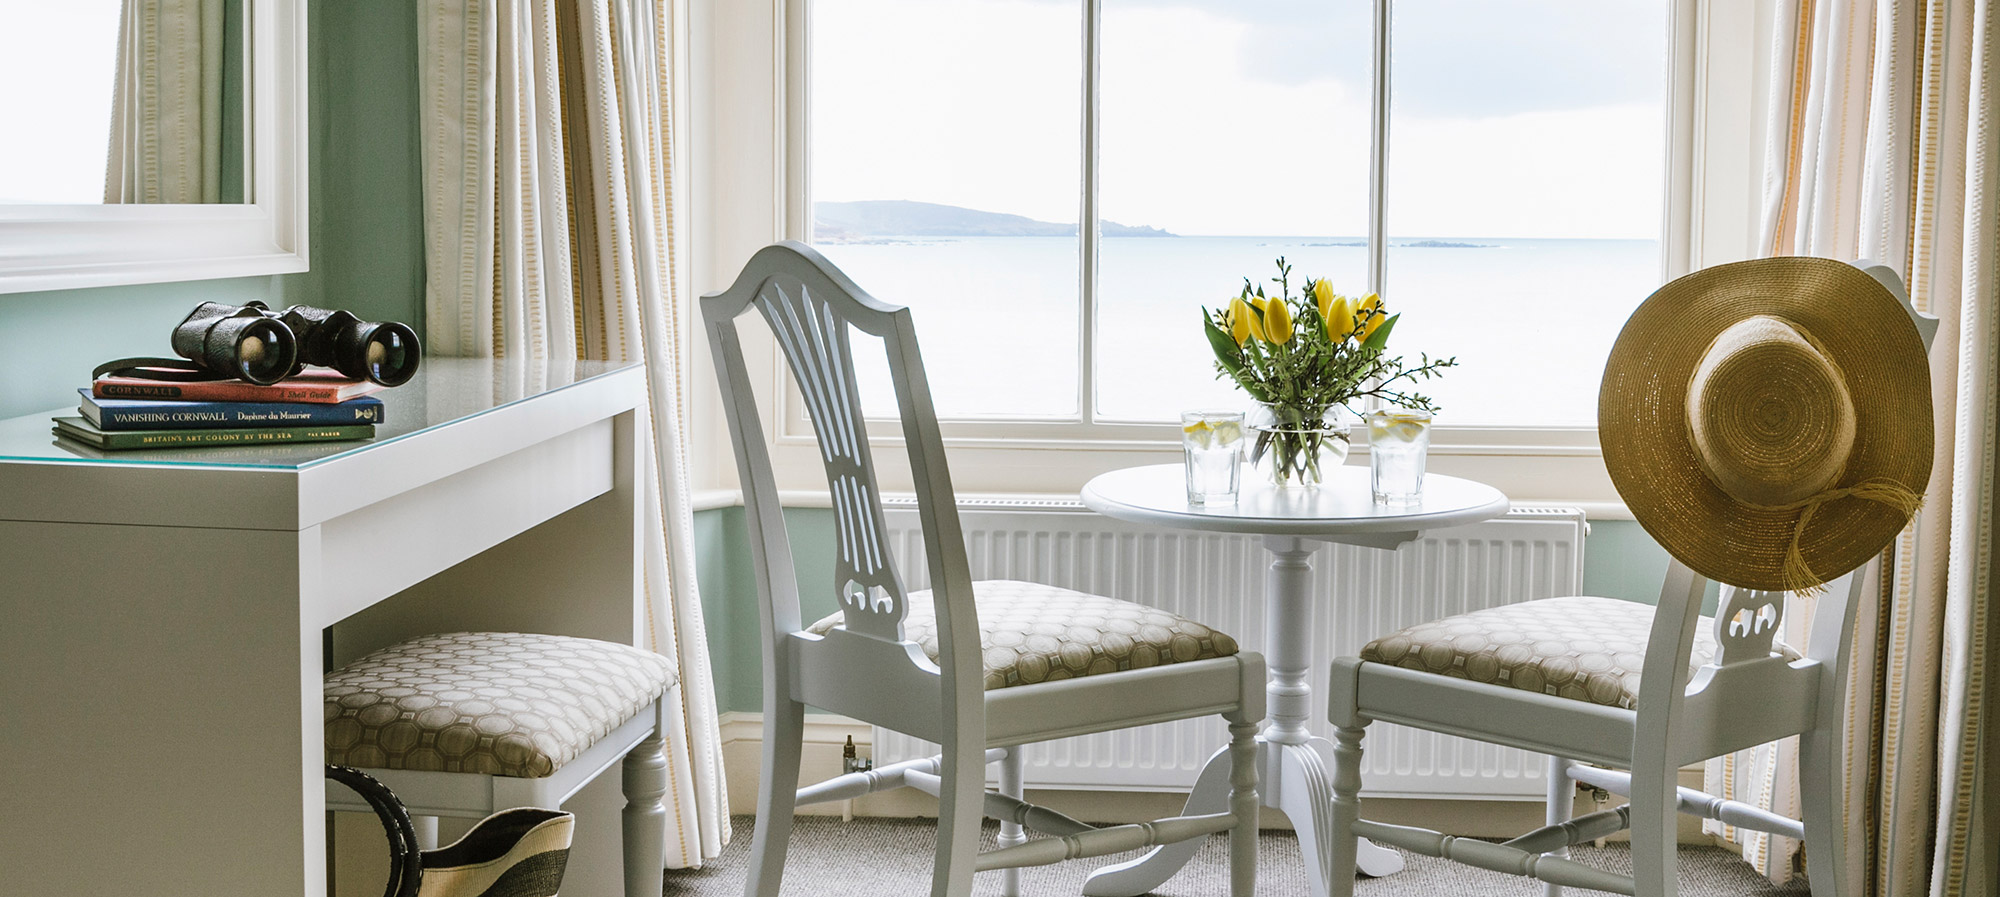 Sea view room in Marazion looking out to the Lizard Peninsula